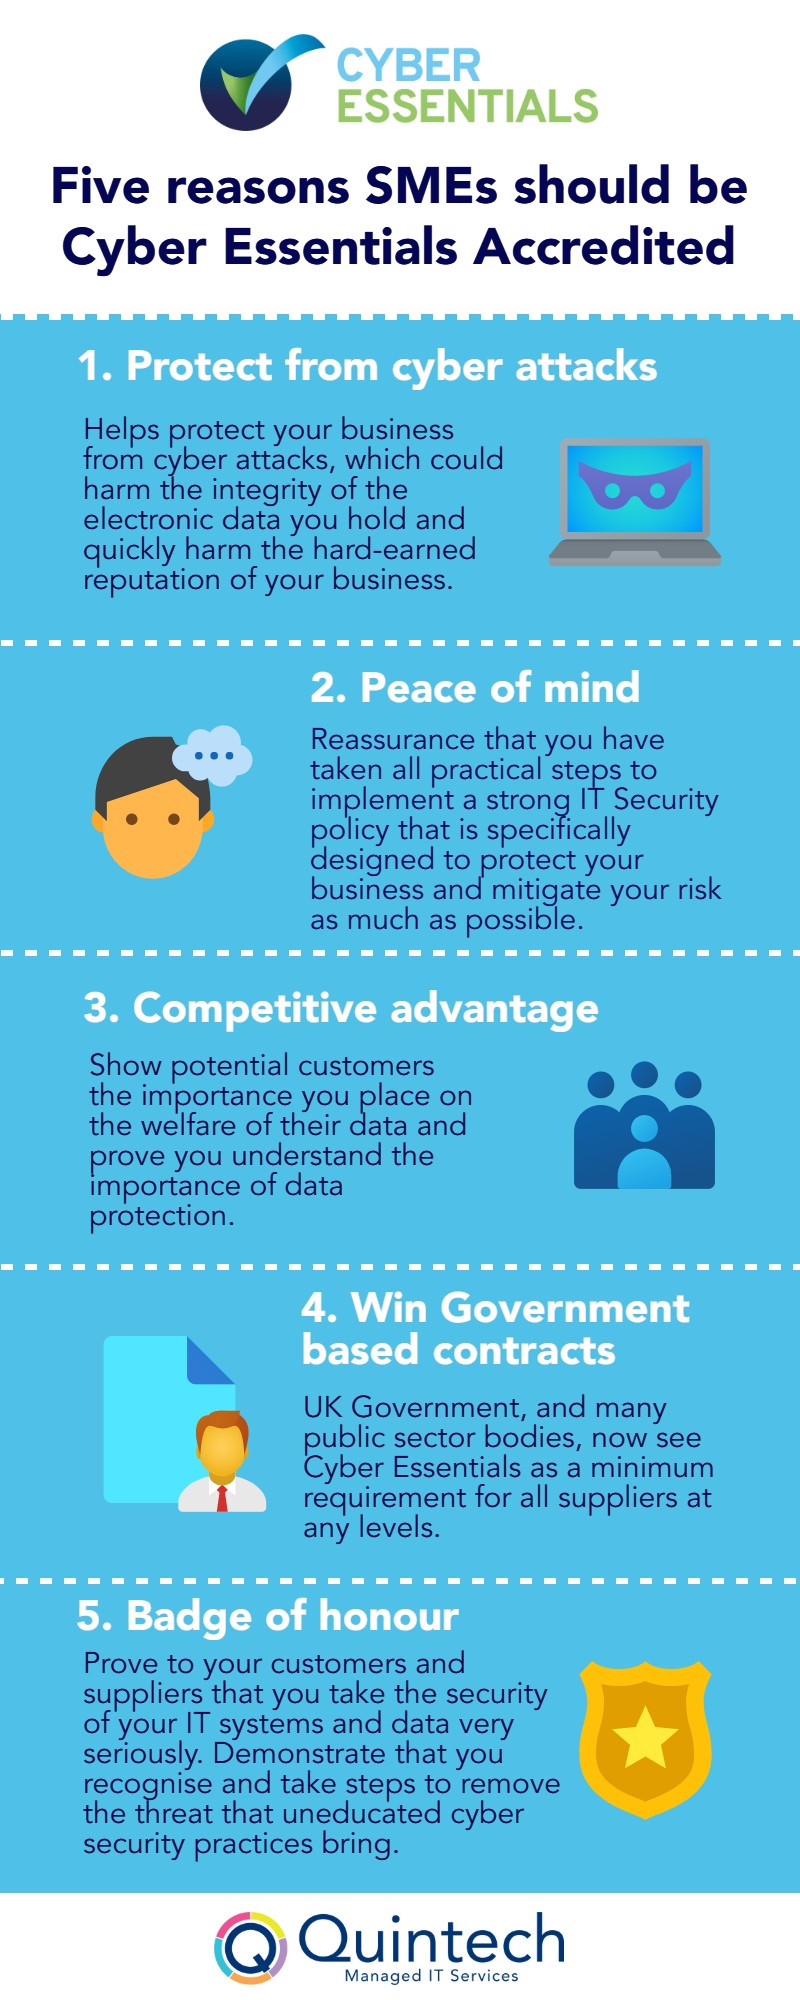 This infographic explains five benefits of gaining the Cyber Essentials Accreditation.